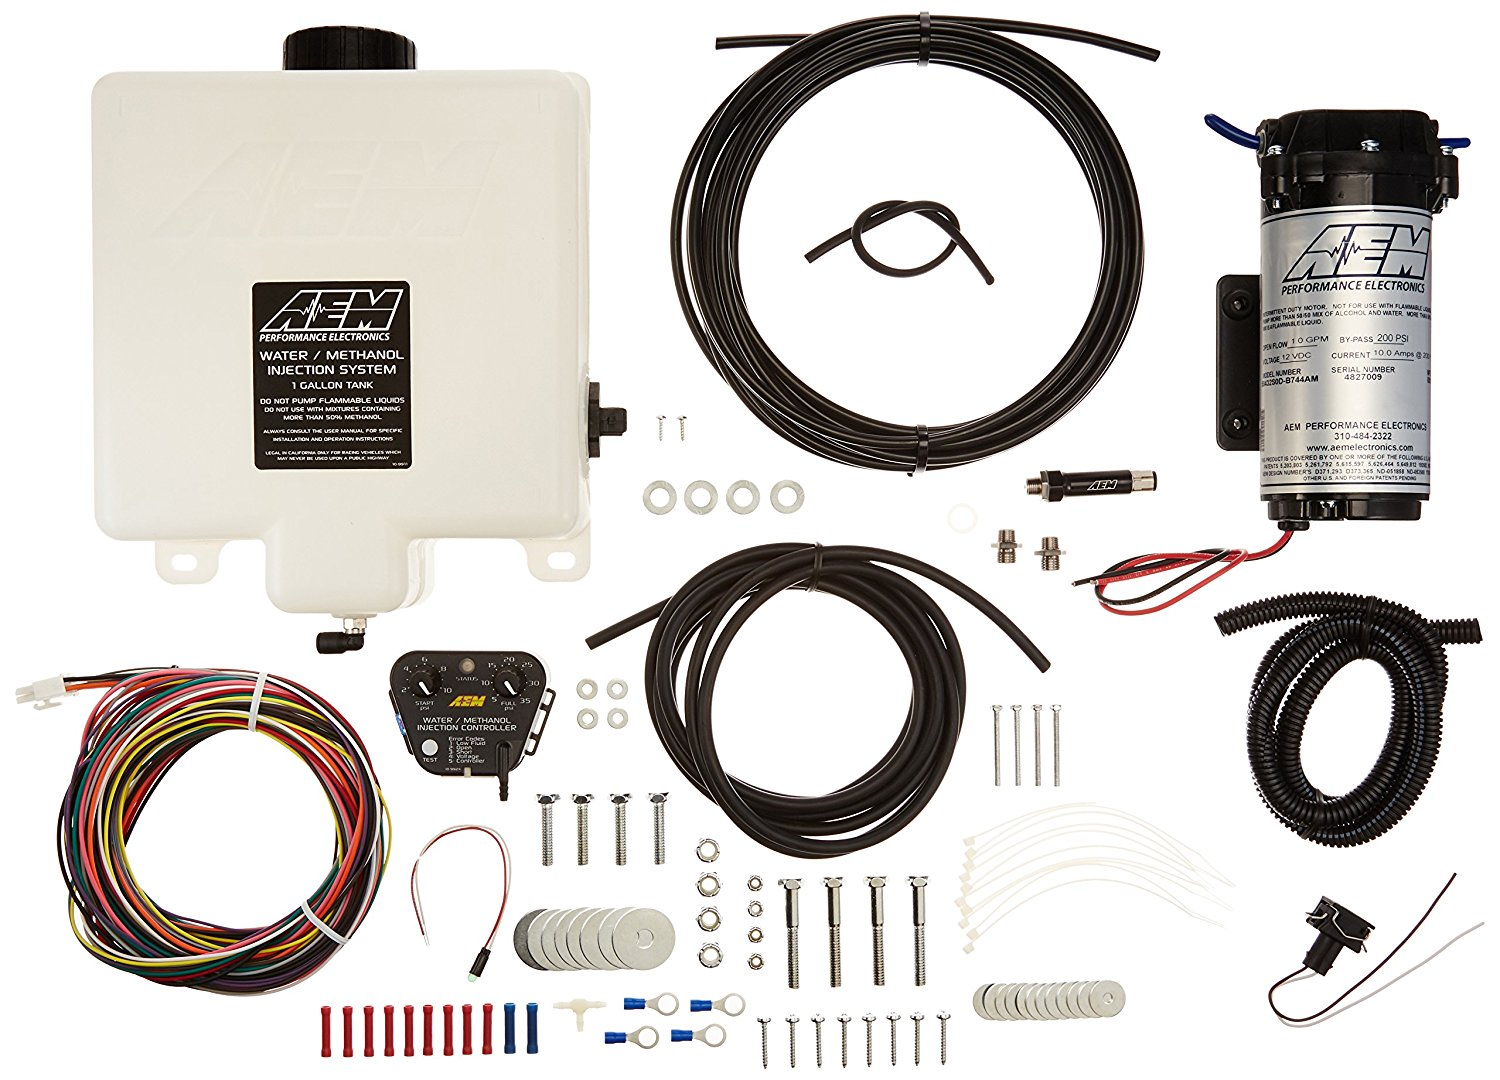 hight resolution of details about genuine aem 30 3300 water methanol injection kit 1 gallon tank v2 w map sensor